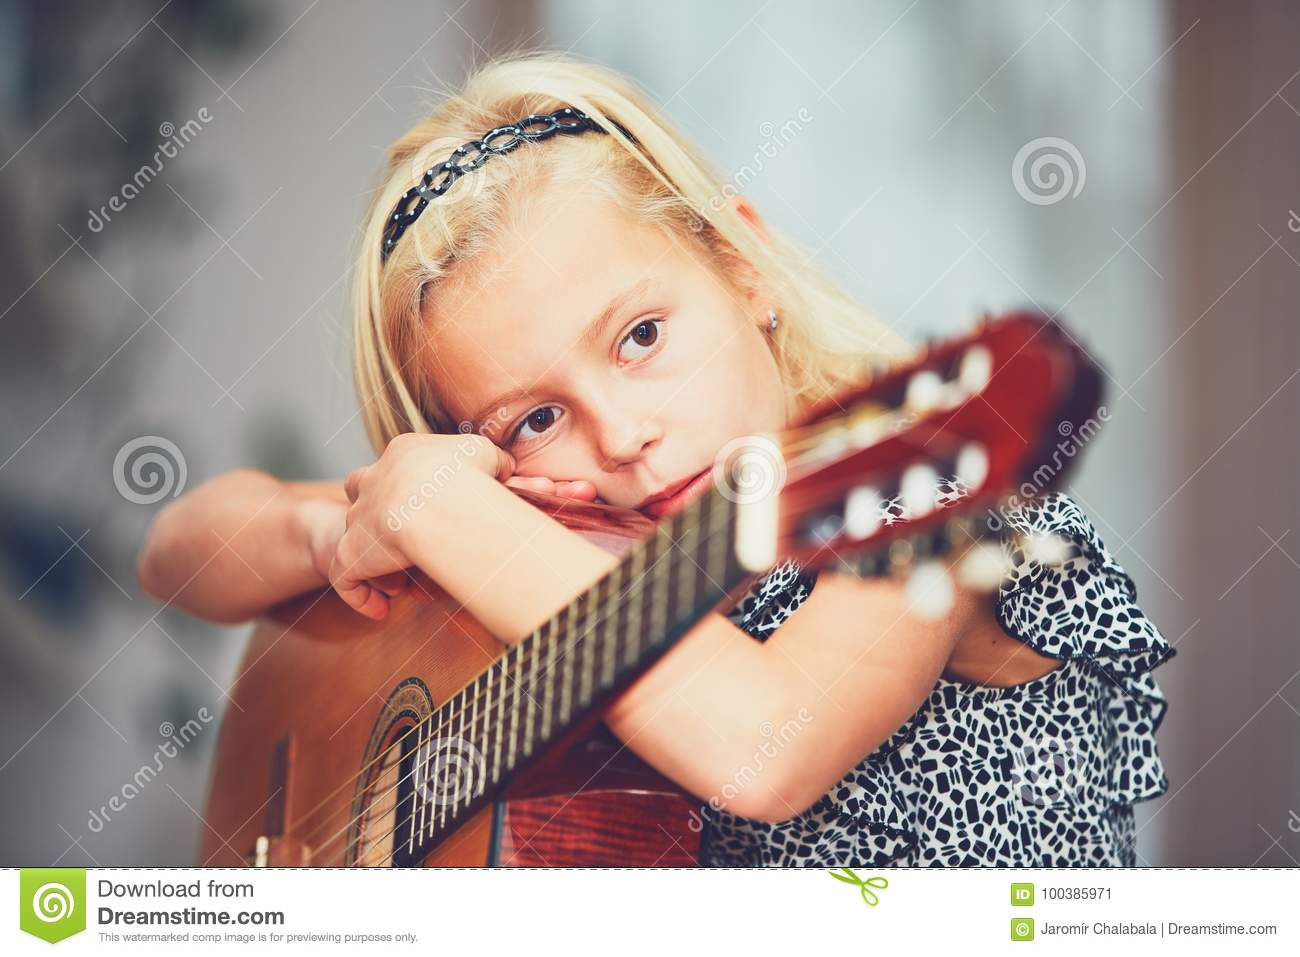 girl learning to play to the guitar stock image image of boredom childhood 100385971. Black Bedroom Furniture Sets. Home Design Ideas